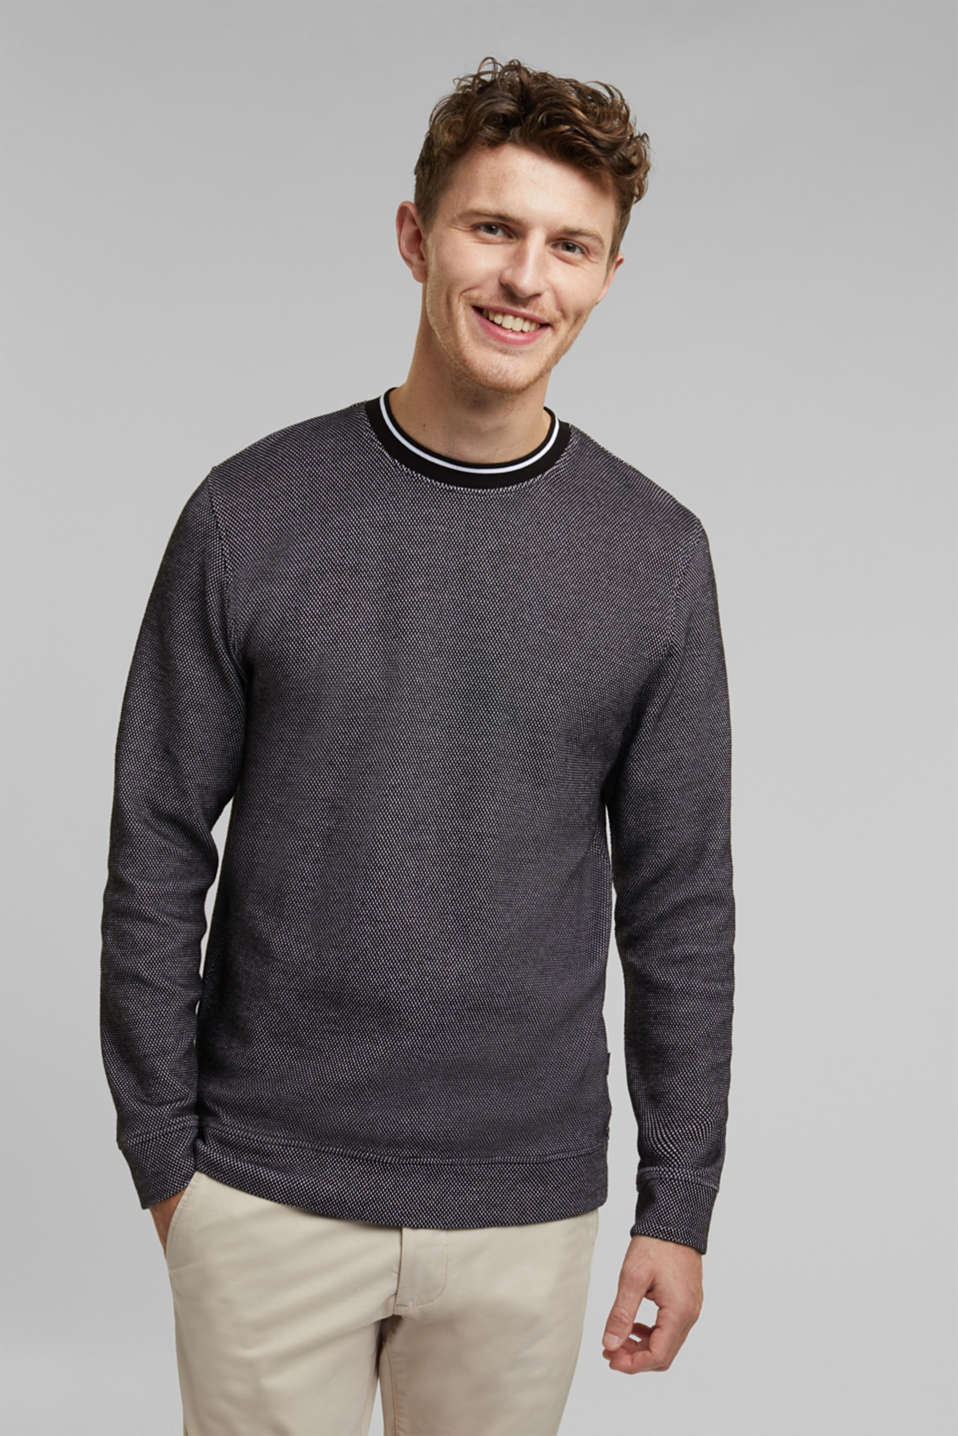 Esprit - Textured sweatshirt, 100% organic cotton